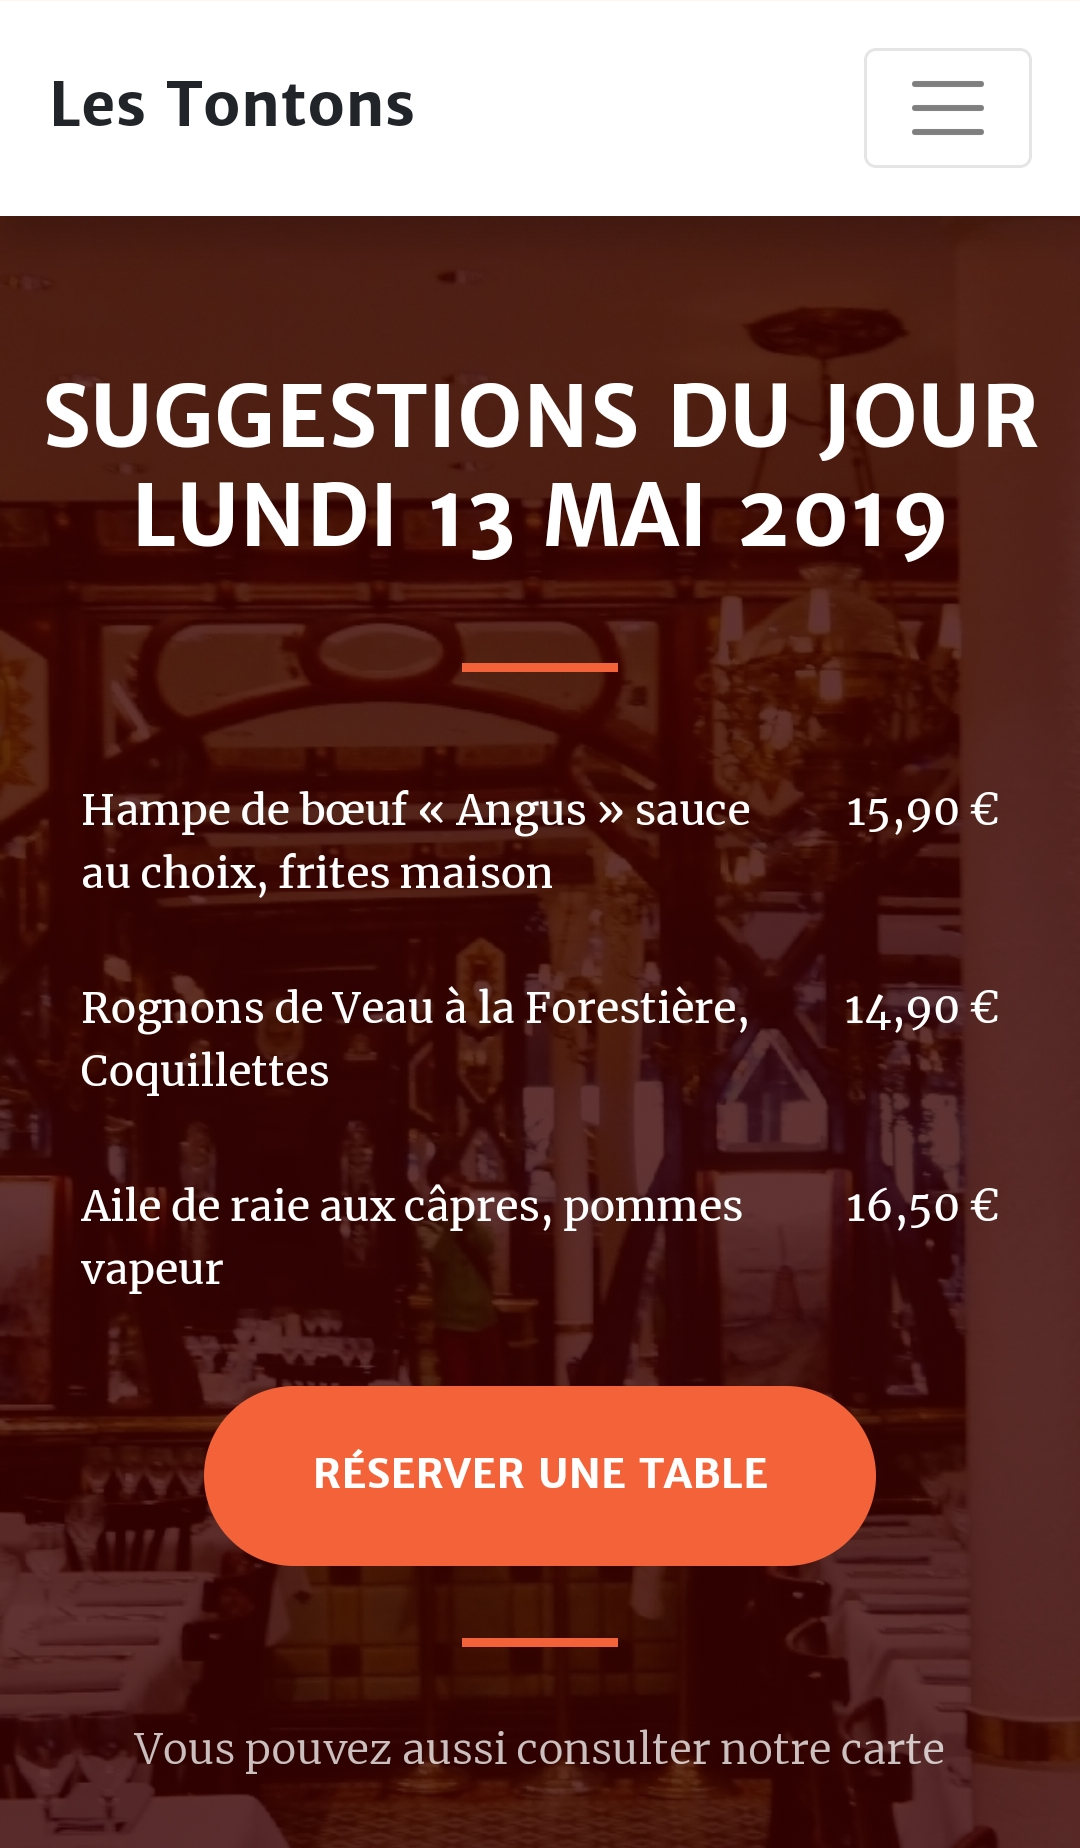 Suggestions du jour - Site